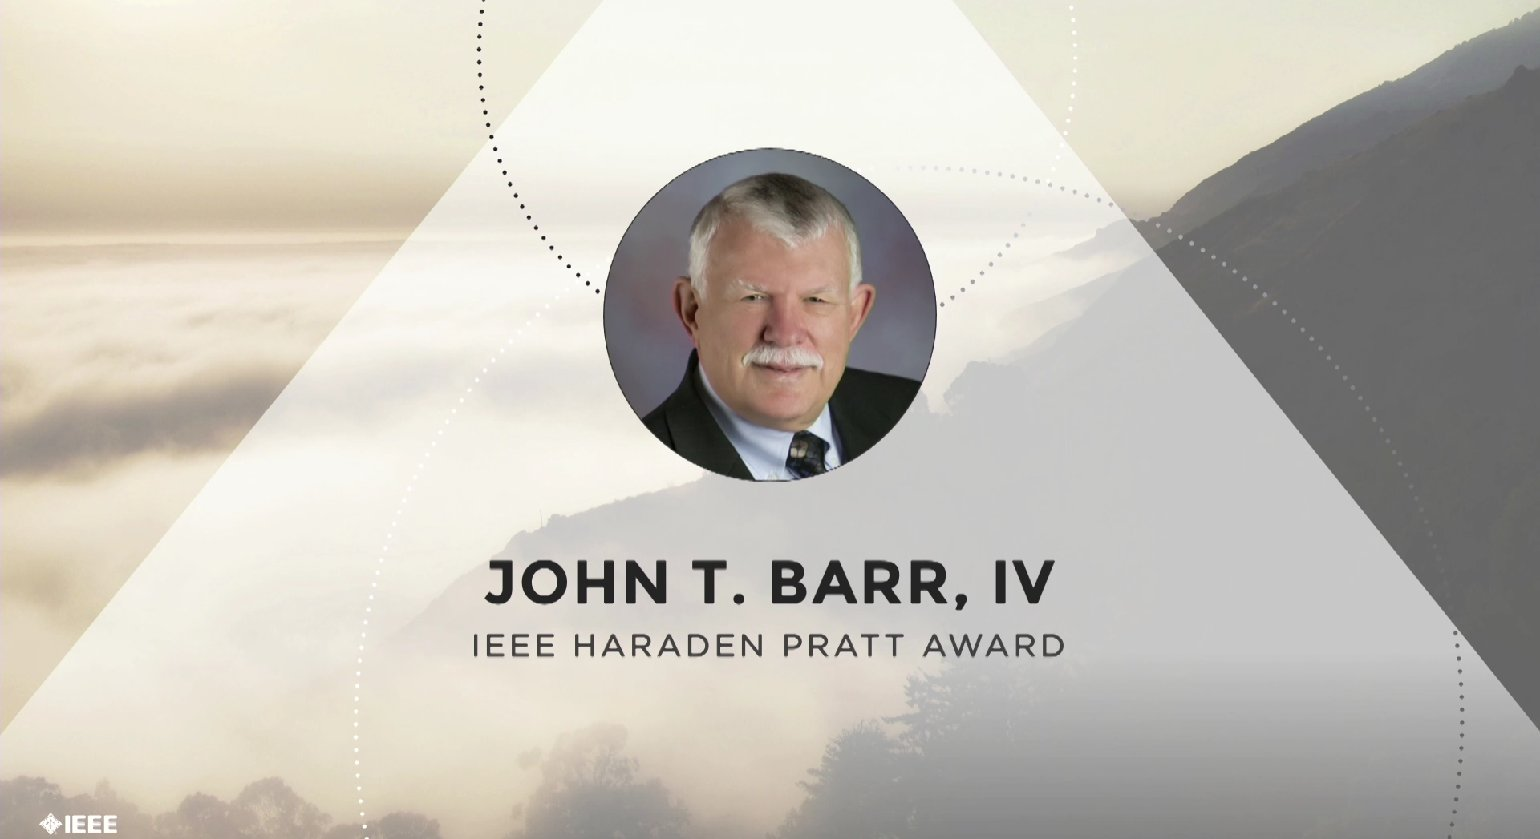 John T. Barr, IV accepts the IEEE Haraden Pratt Award - Honors Ceremony 2017